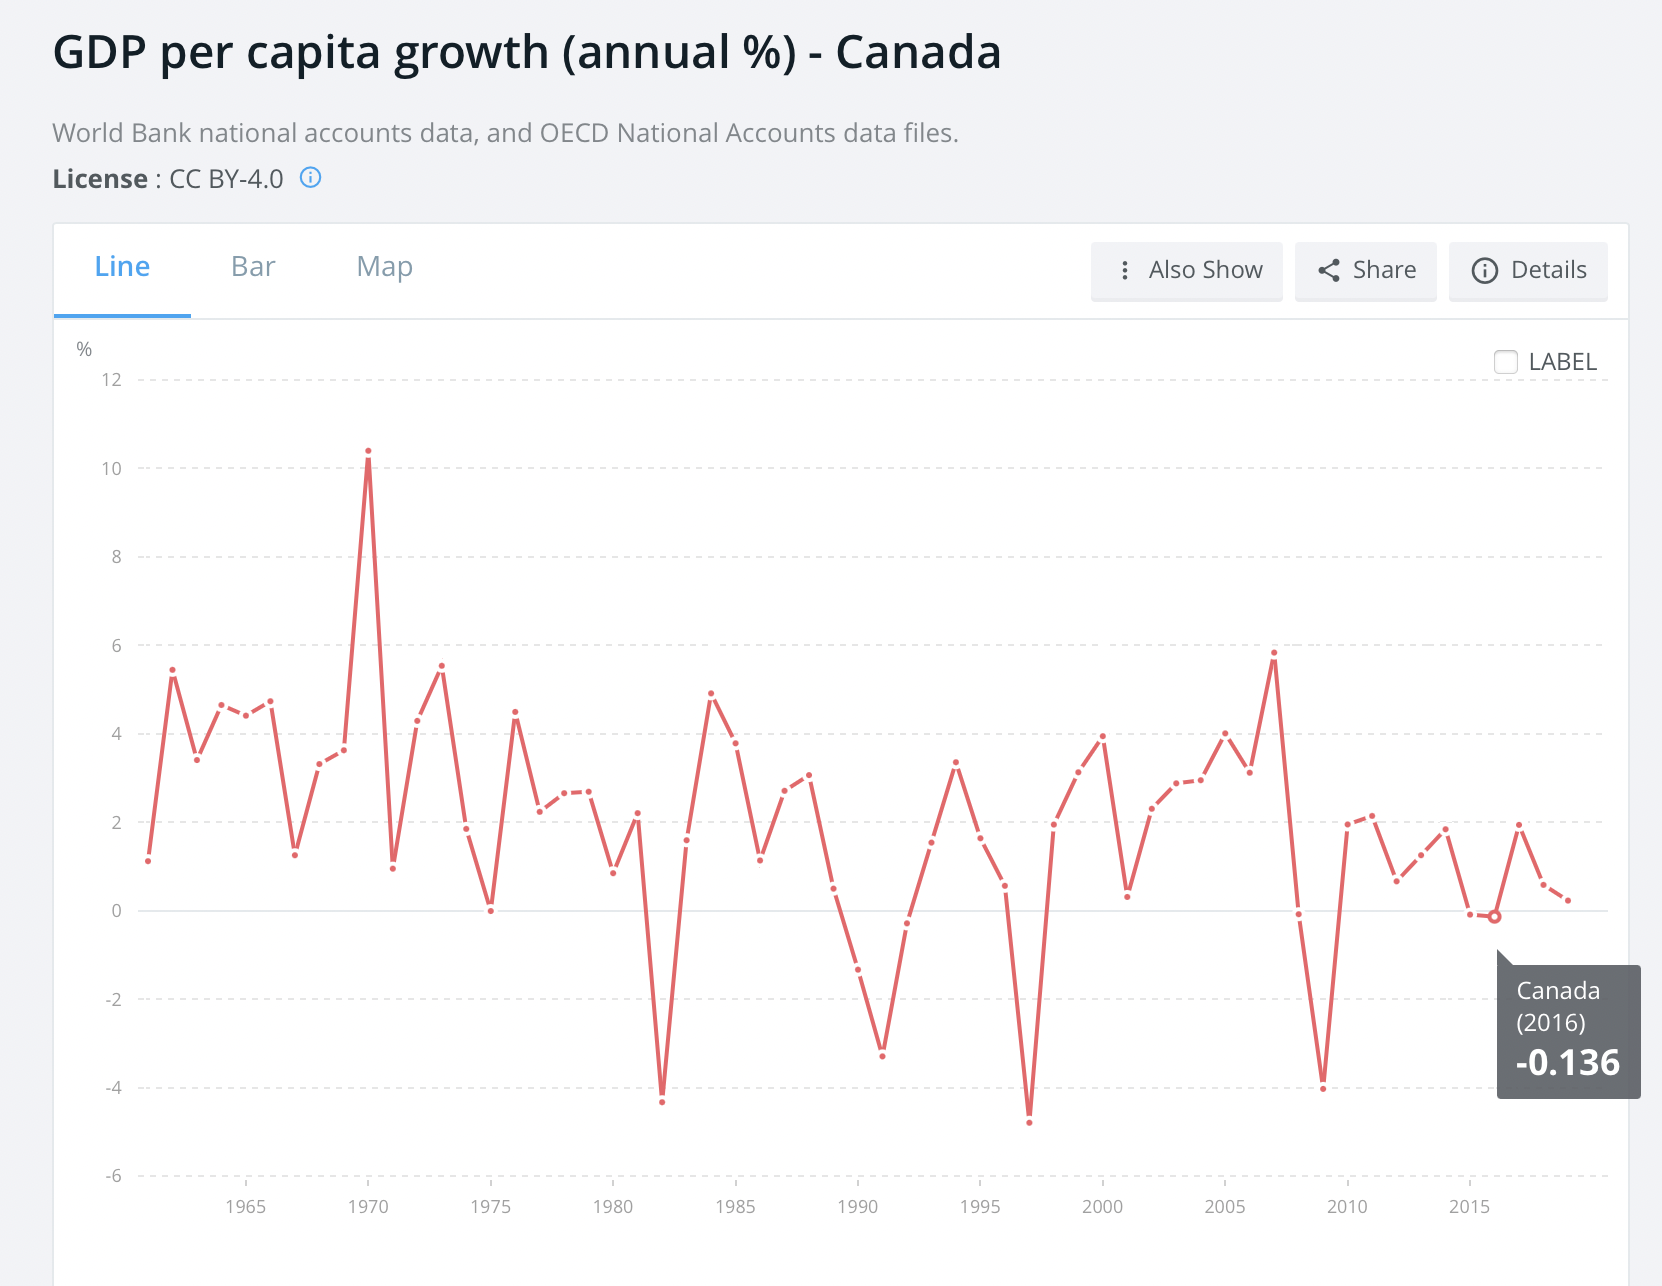 GDP growth per capita for Canada